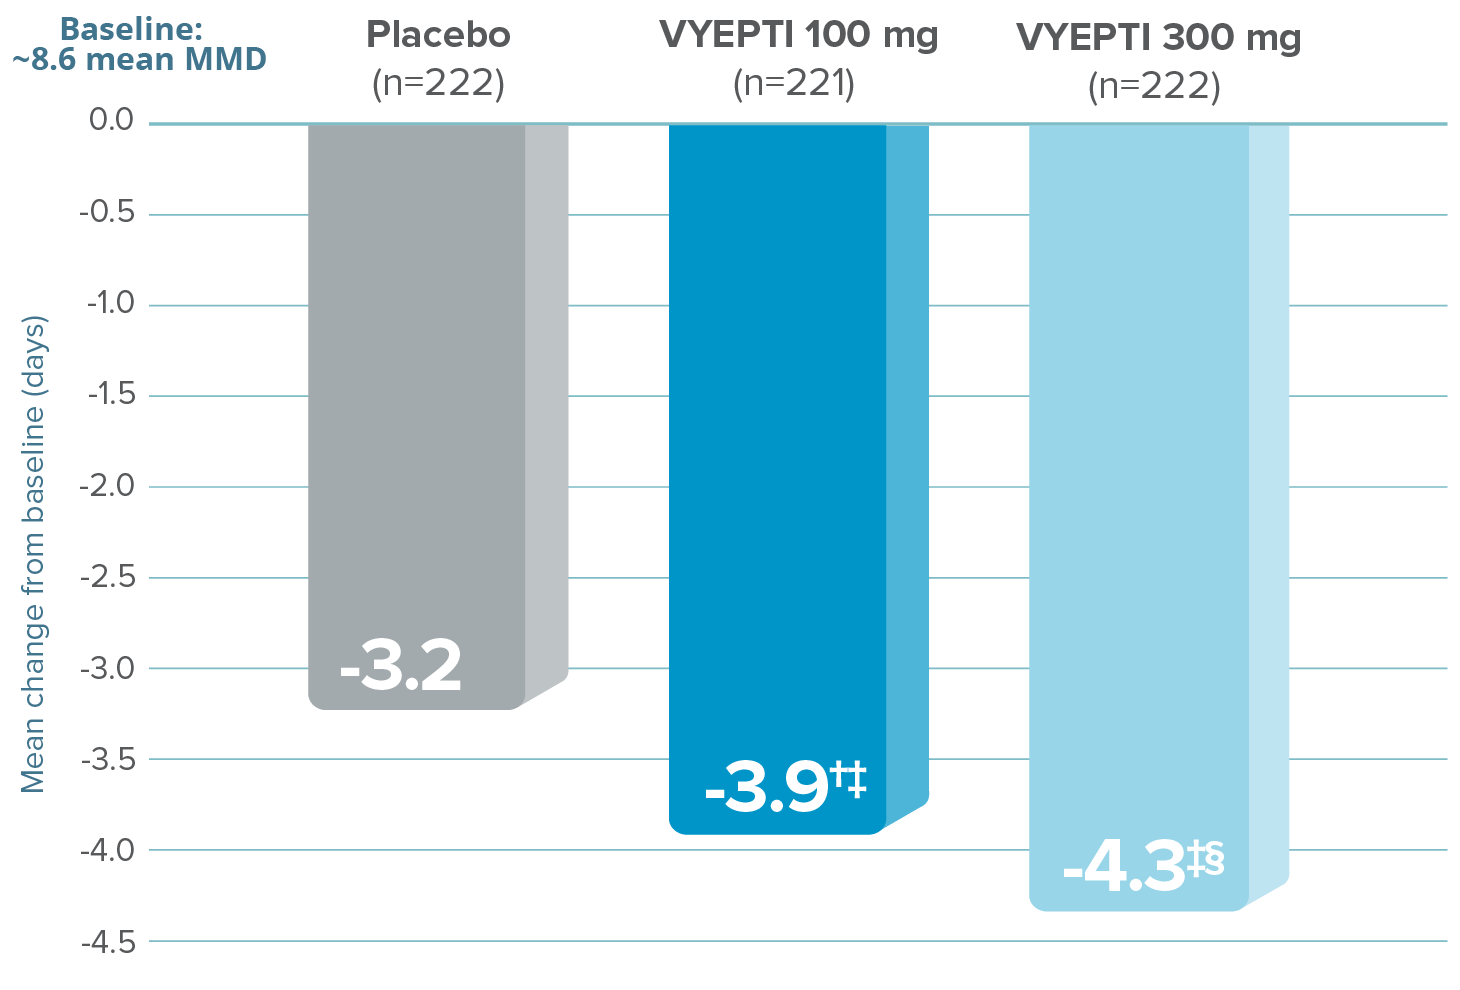 Graph showing that After the first dose, VYEPTI 100 mg and 300 mg dosages reduced the number of mean MMD by 3.9 and 4.3 (Months 1-3), respectively, vs 3.2 with placebo (baseline ~8.6 mean MMD; p=0.018 vs placebo for VYEPTI 100 mg; p<0.001 vs placebo for VYEPTI 300 mg)